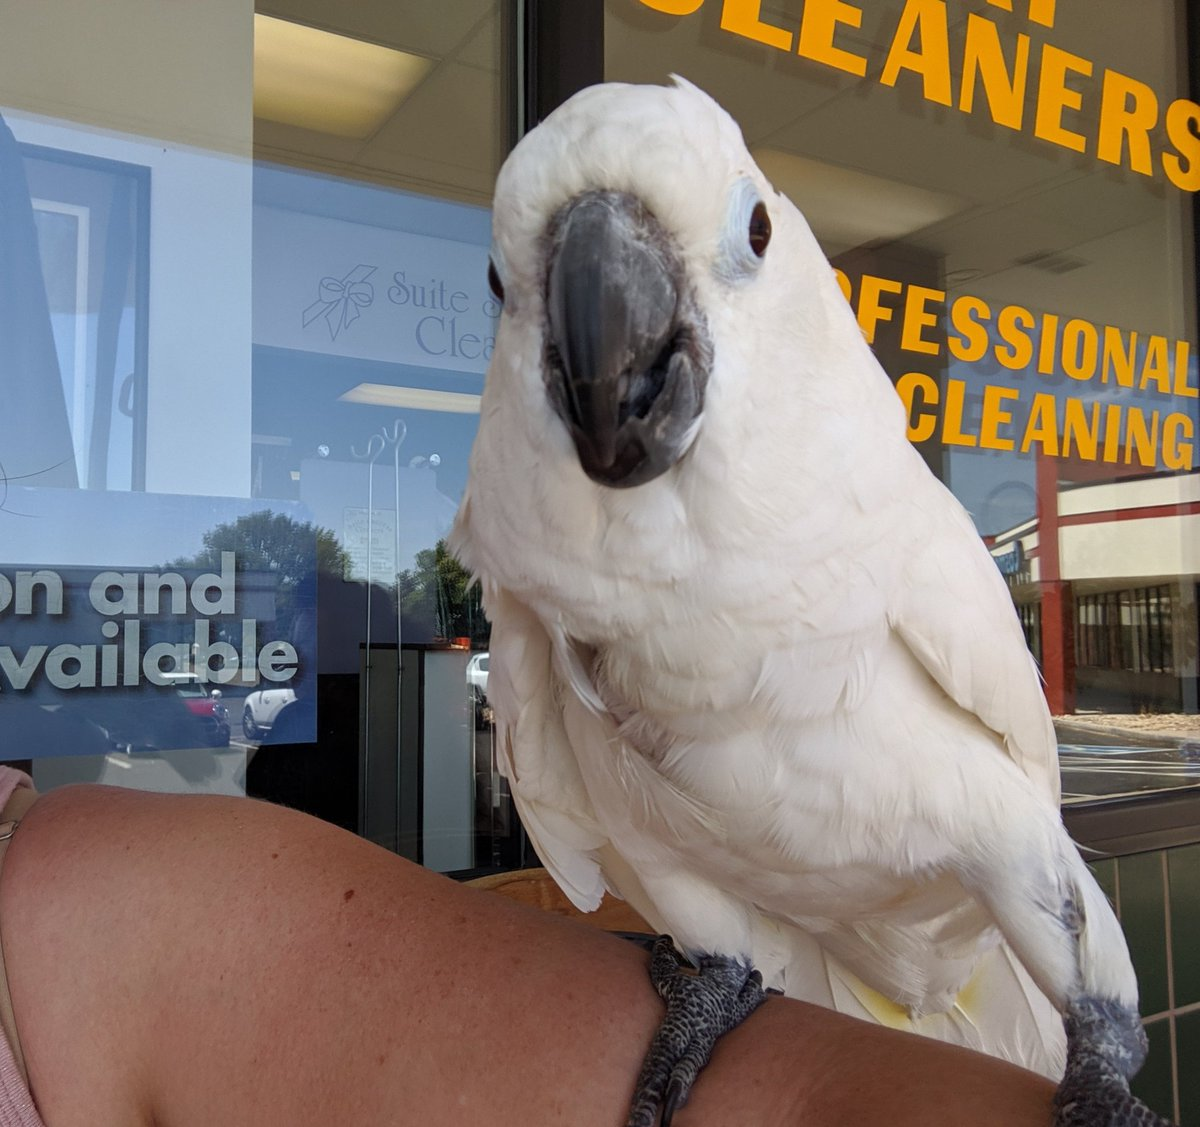 Today, I met Shyla. A female Cockatoo that made me laugh. Even though she's not a dog, it made me think of @IvePetThatDog because of how happy she made me. #messyhair #cockatoo #funnybird https://t.co/pYEPjGM1qk